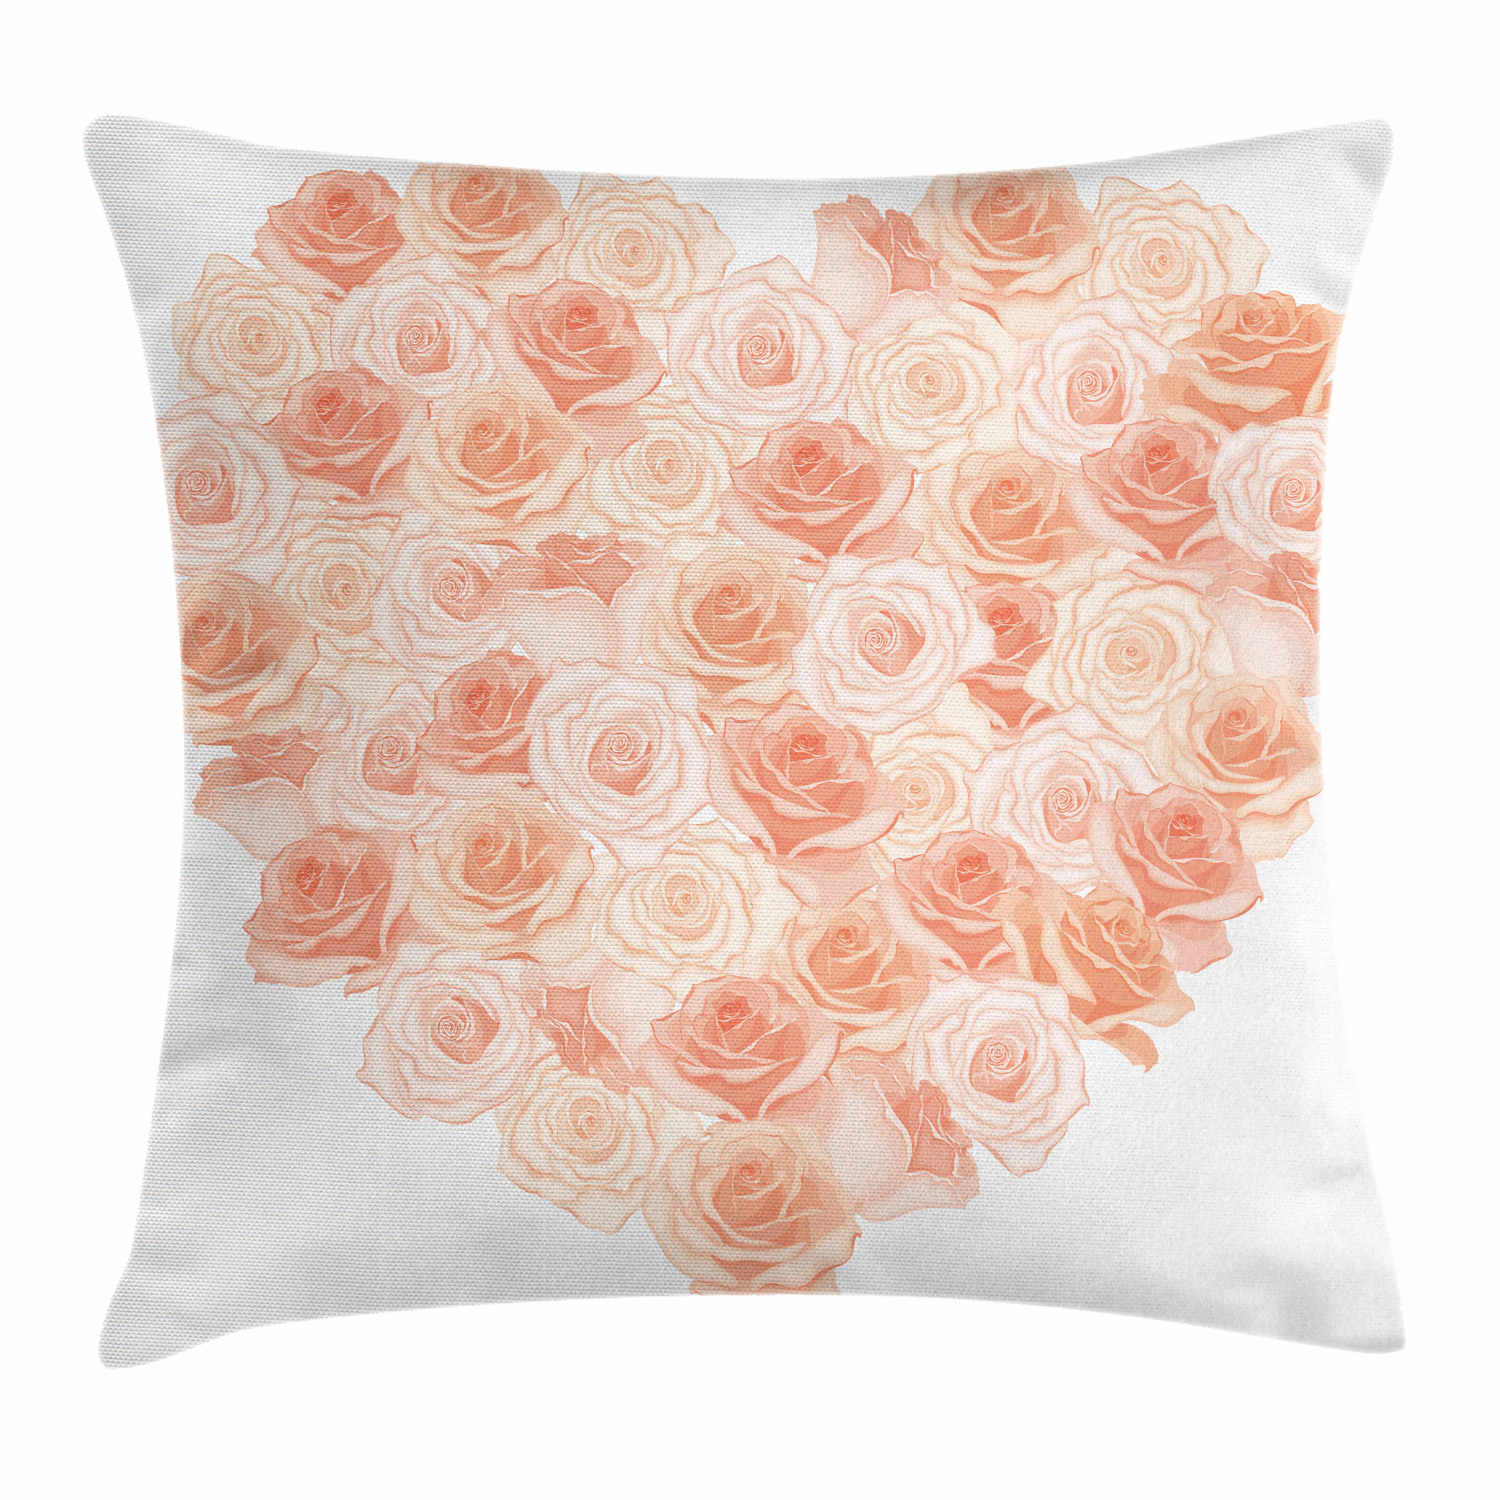 peach throw pillow cushion cover valentines day inspired heart shaped blooming roses bouquet with romantic design decorative square accent pillow